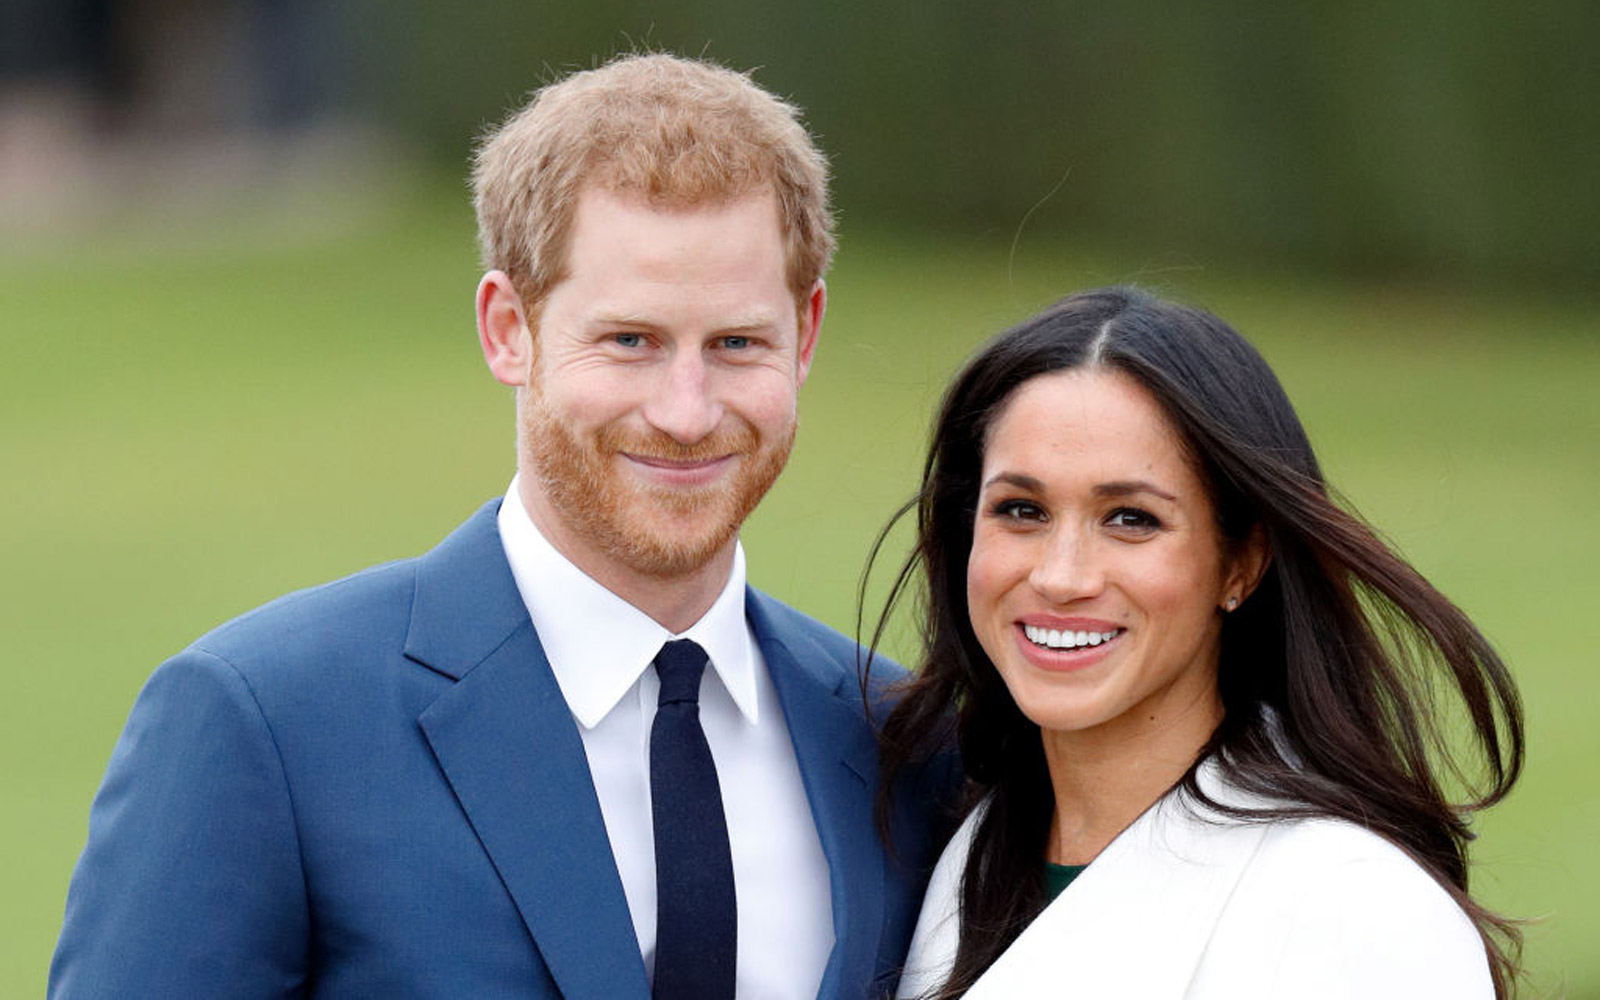 Prince Harry and Meghan Markle Look a Lot Like the Kids in 'Love, Actually'